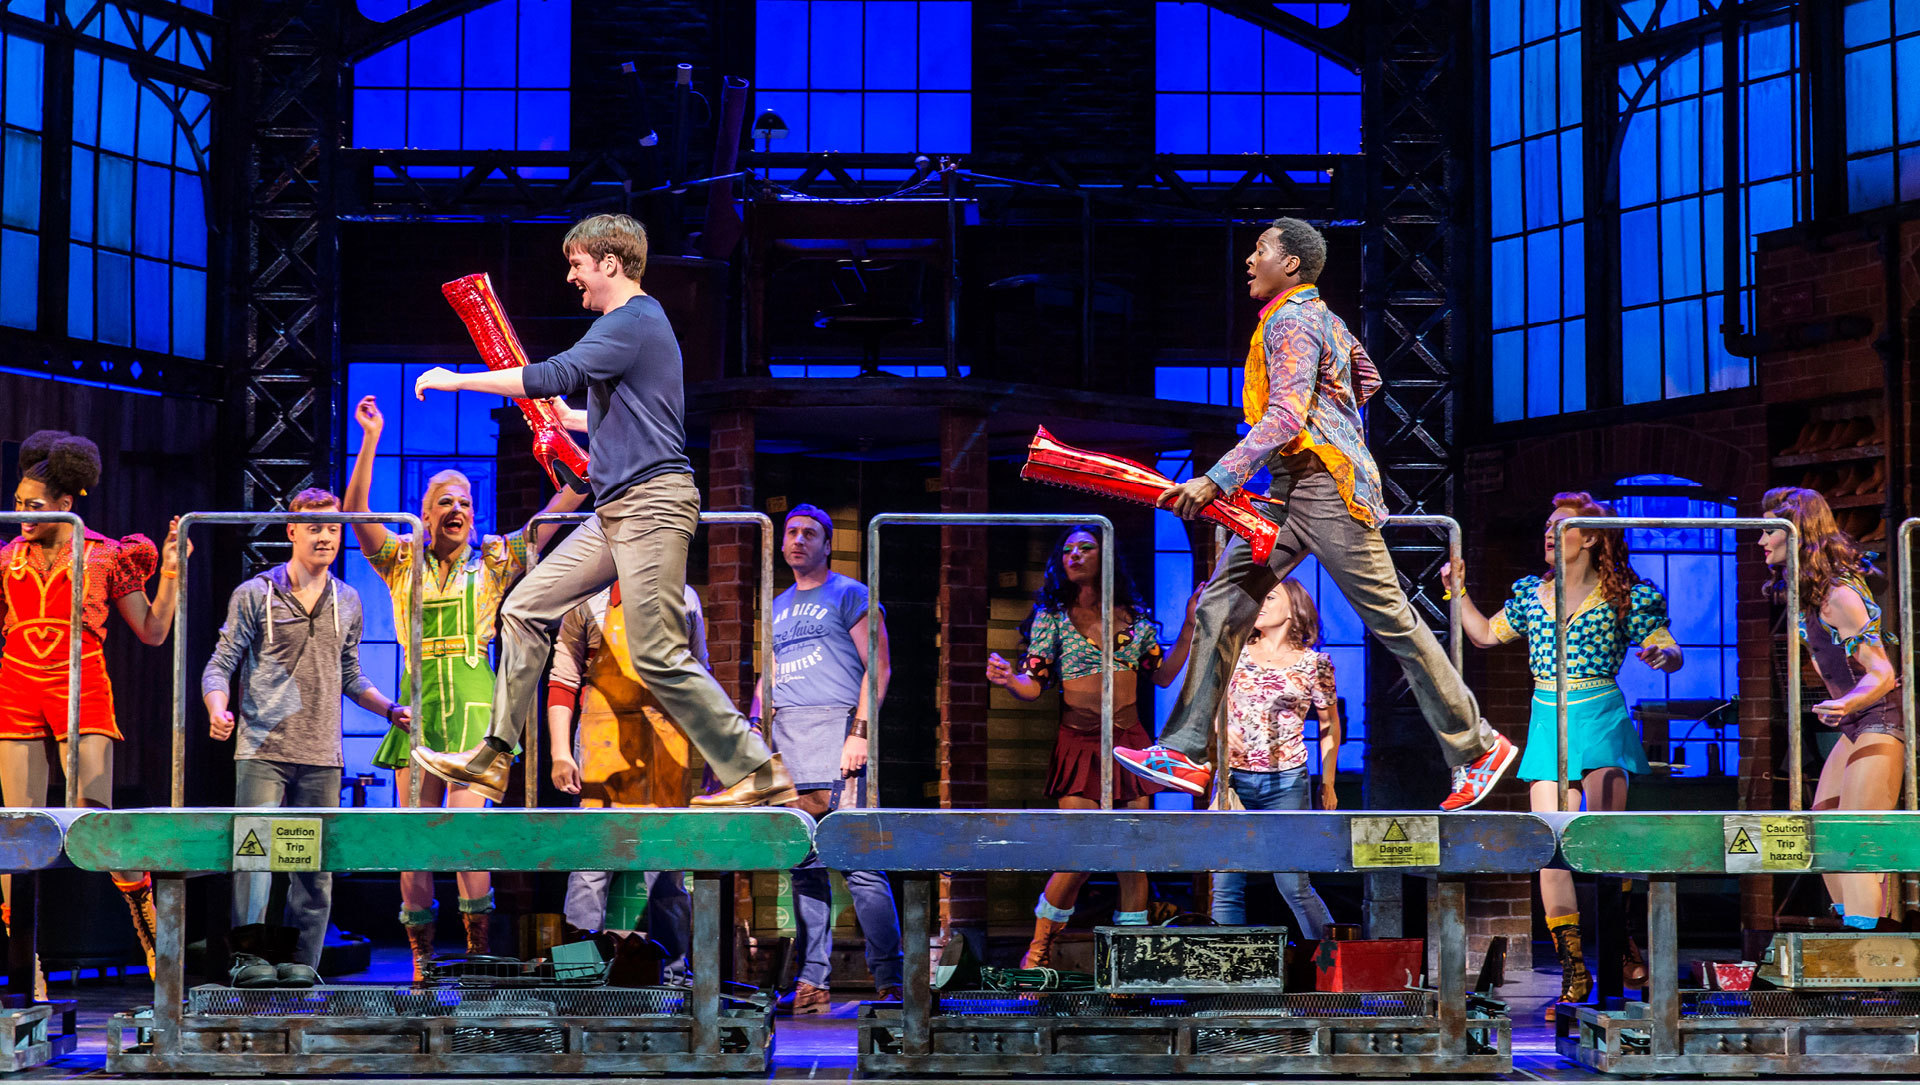 The cast of Kinky Boots will strut their way into Venue Cymru in February